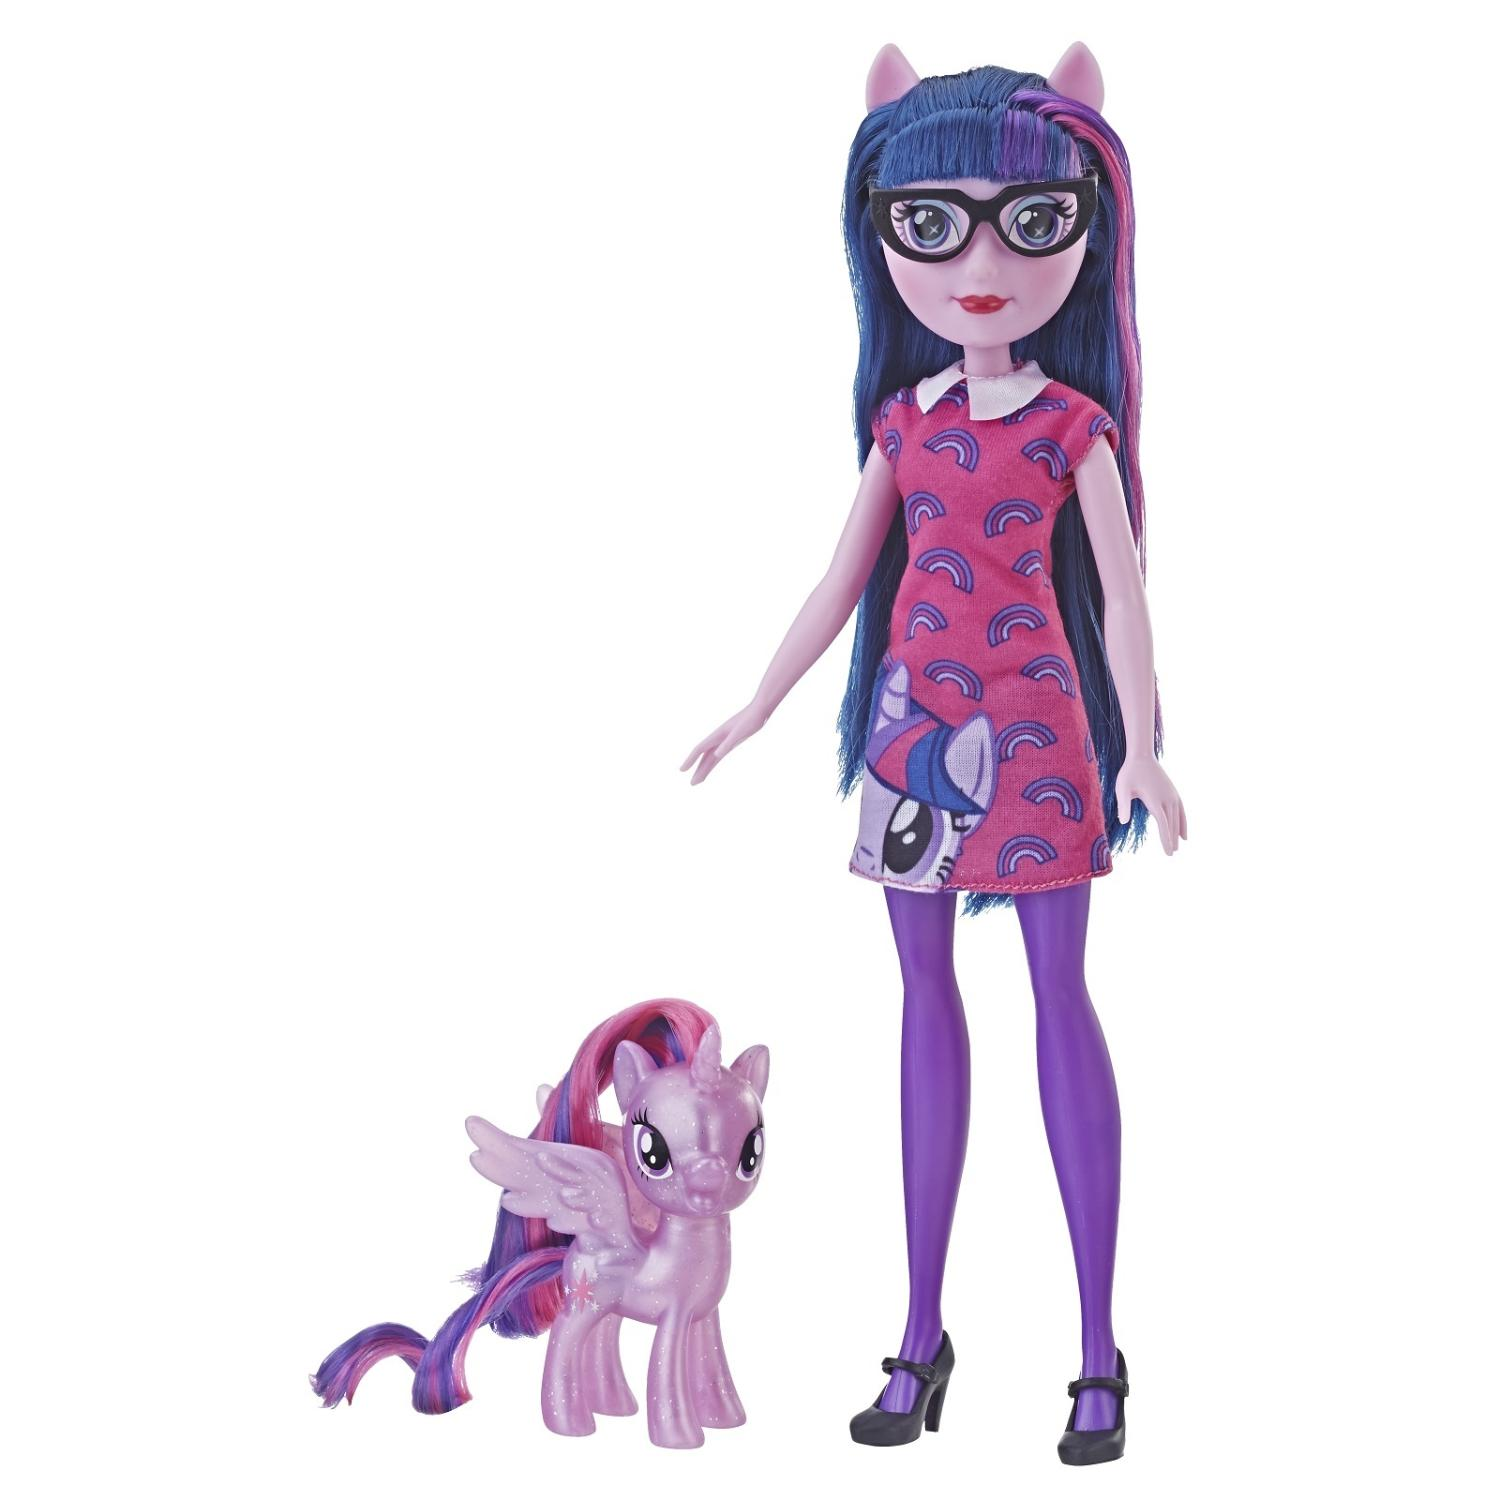 First Photos Of My Little Pony And Equestria Girls 2019